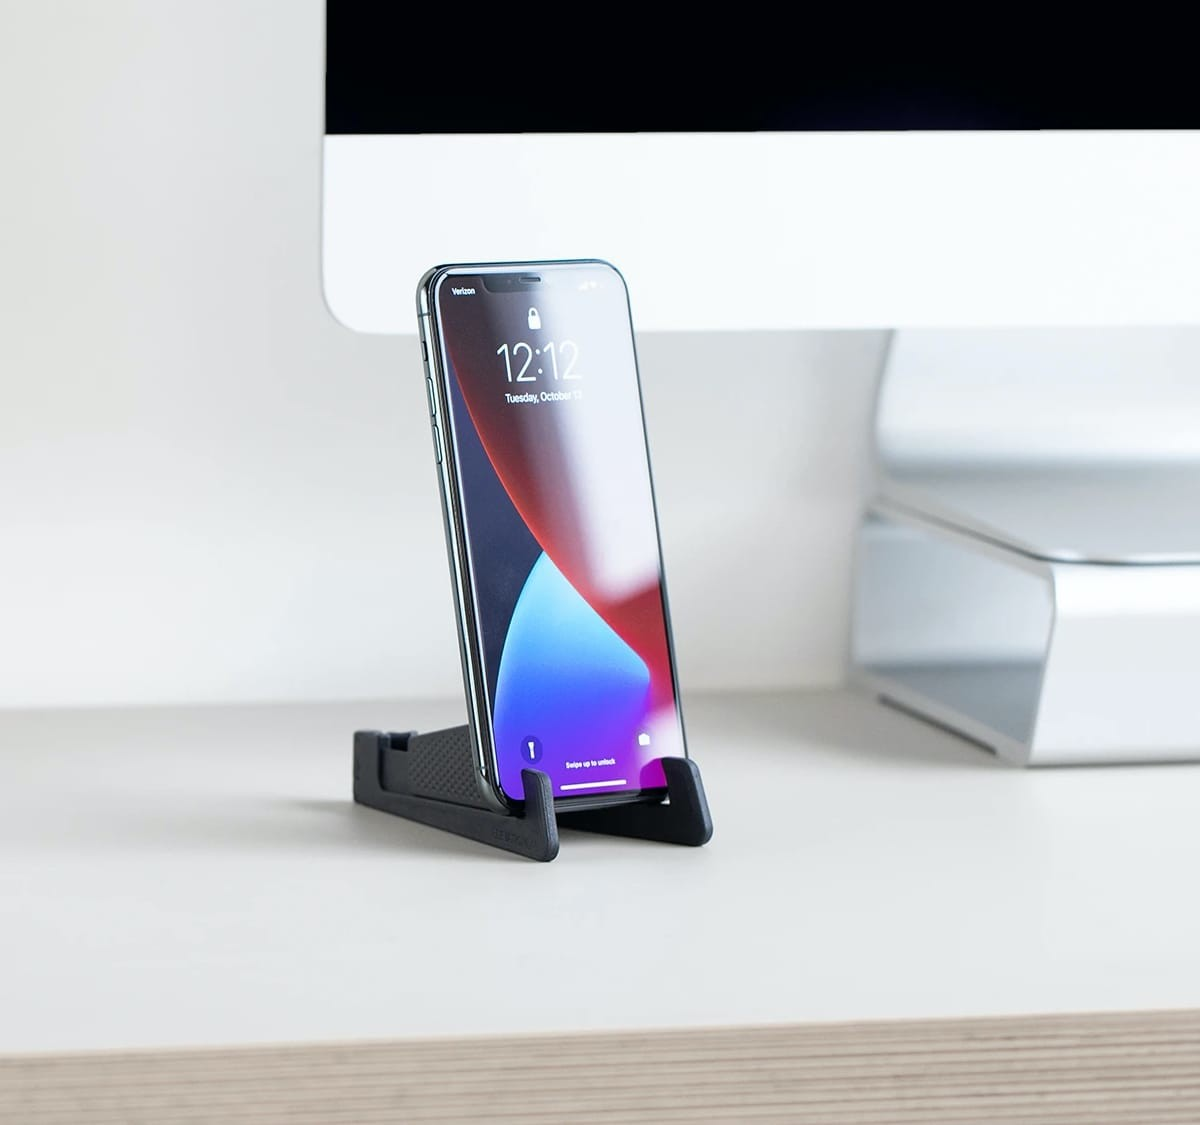 ElevationLab GoStand adjustable iPhone stand has a compact, portable design